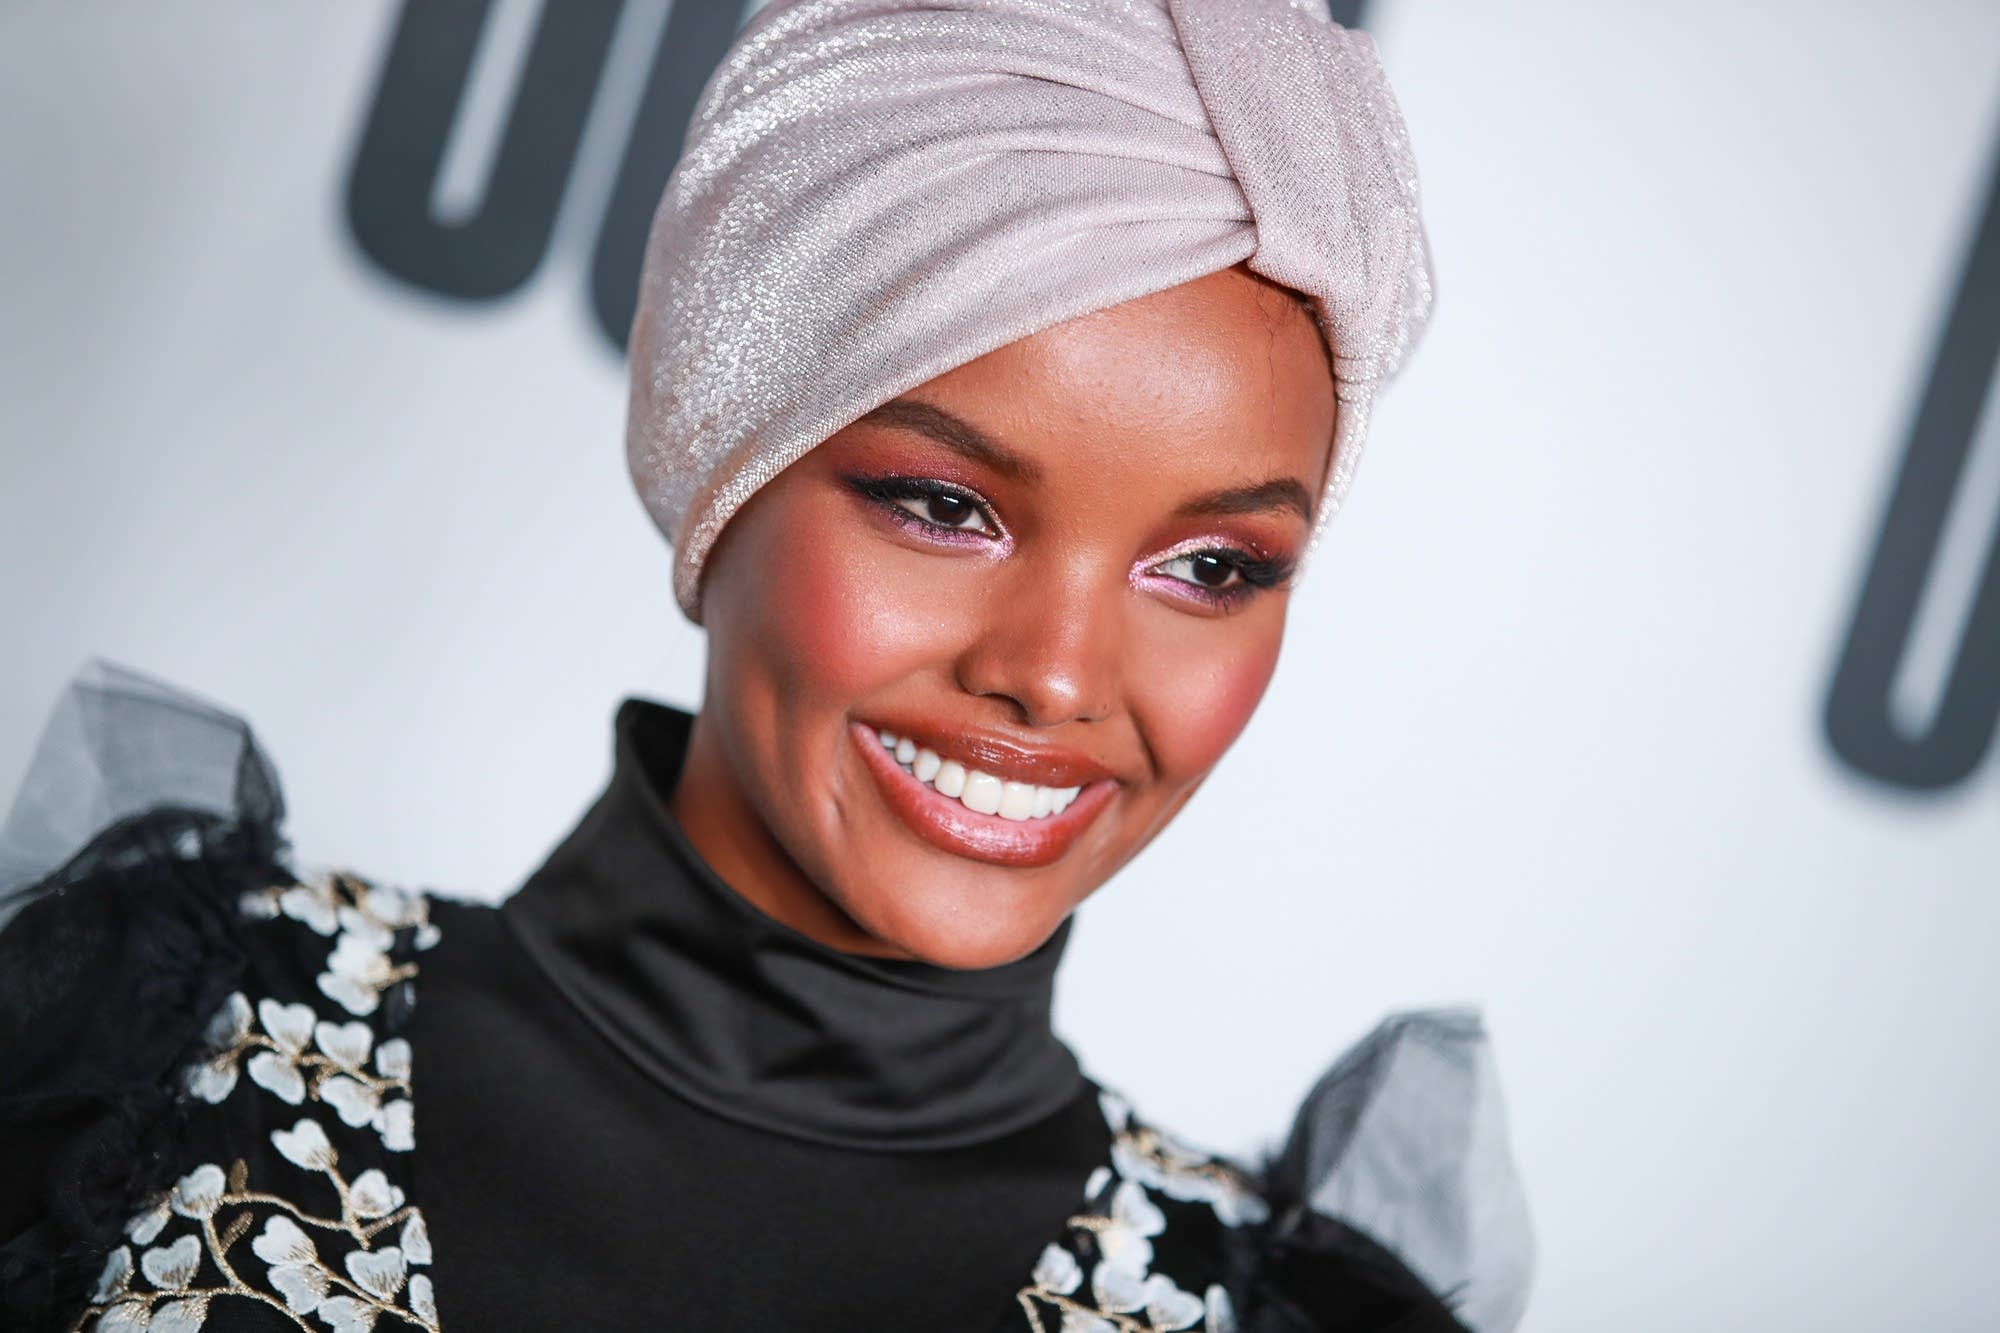 e0b8633f678 Halima Aden is first to wear a burkini in Sports Illustrated swimsuit issue